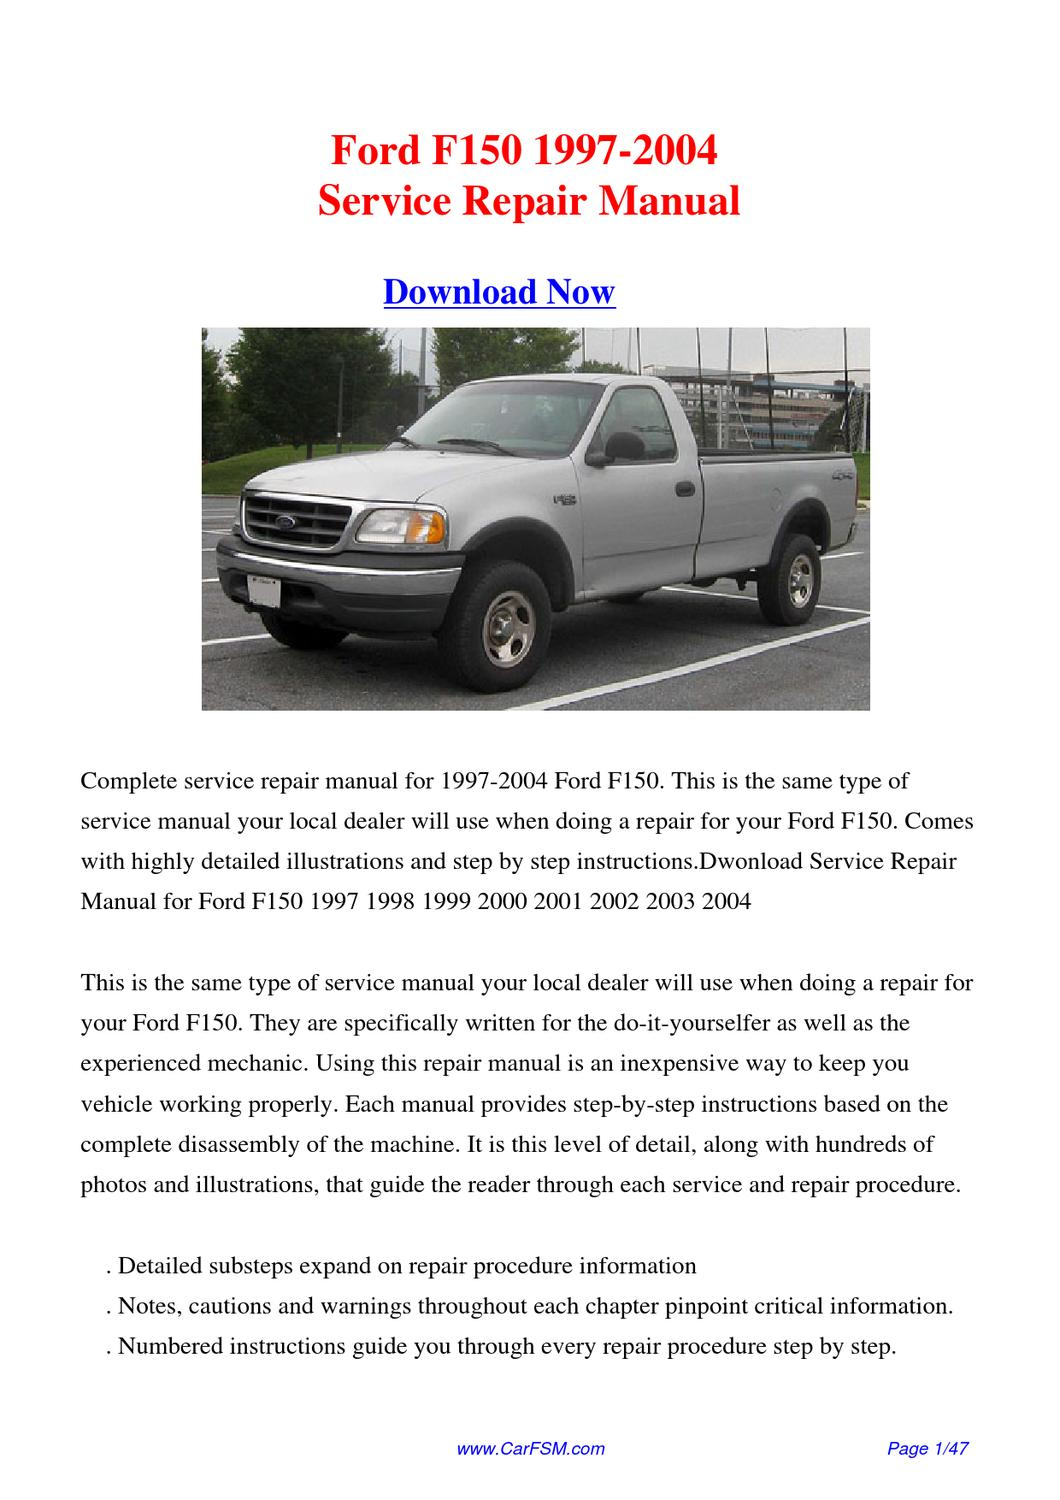 download 1997 2004 ford f150 service repair manual by gong. Black Bedroom Furniture Sets. Home Design Ideas